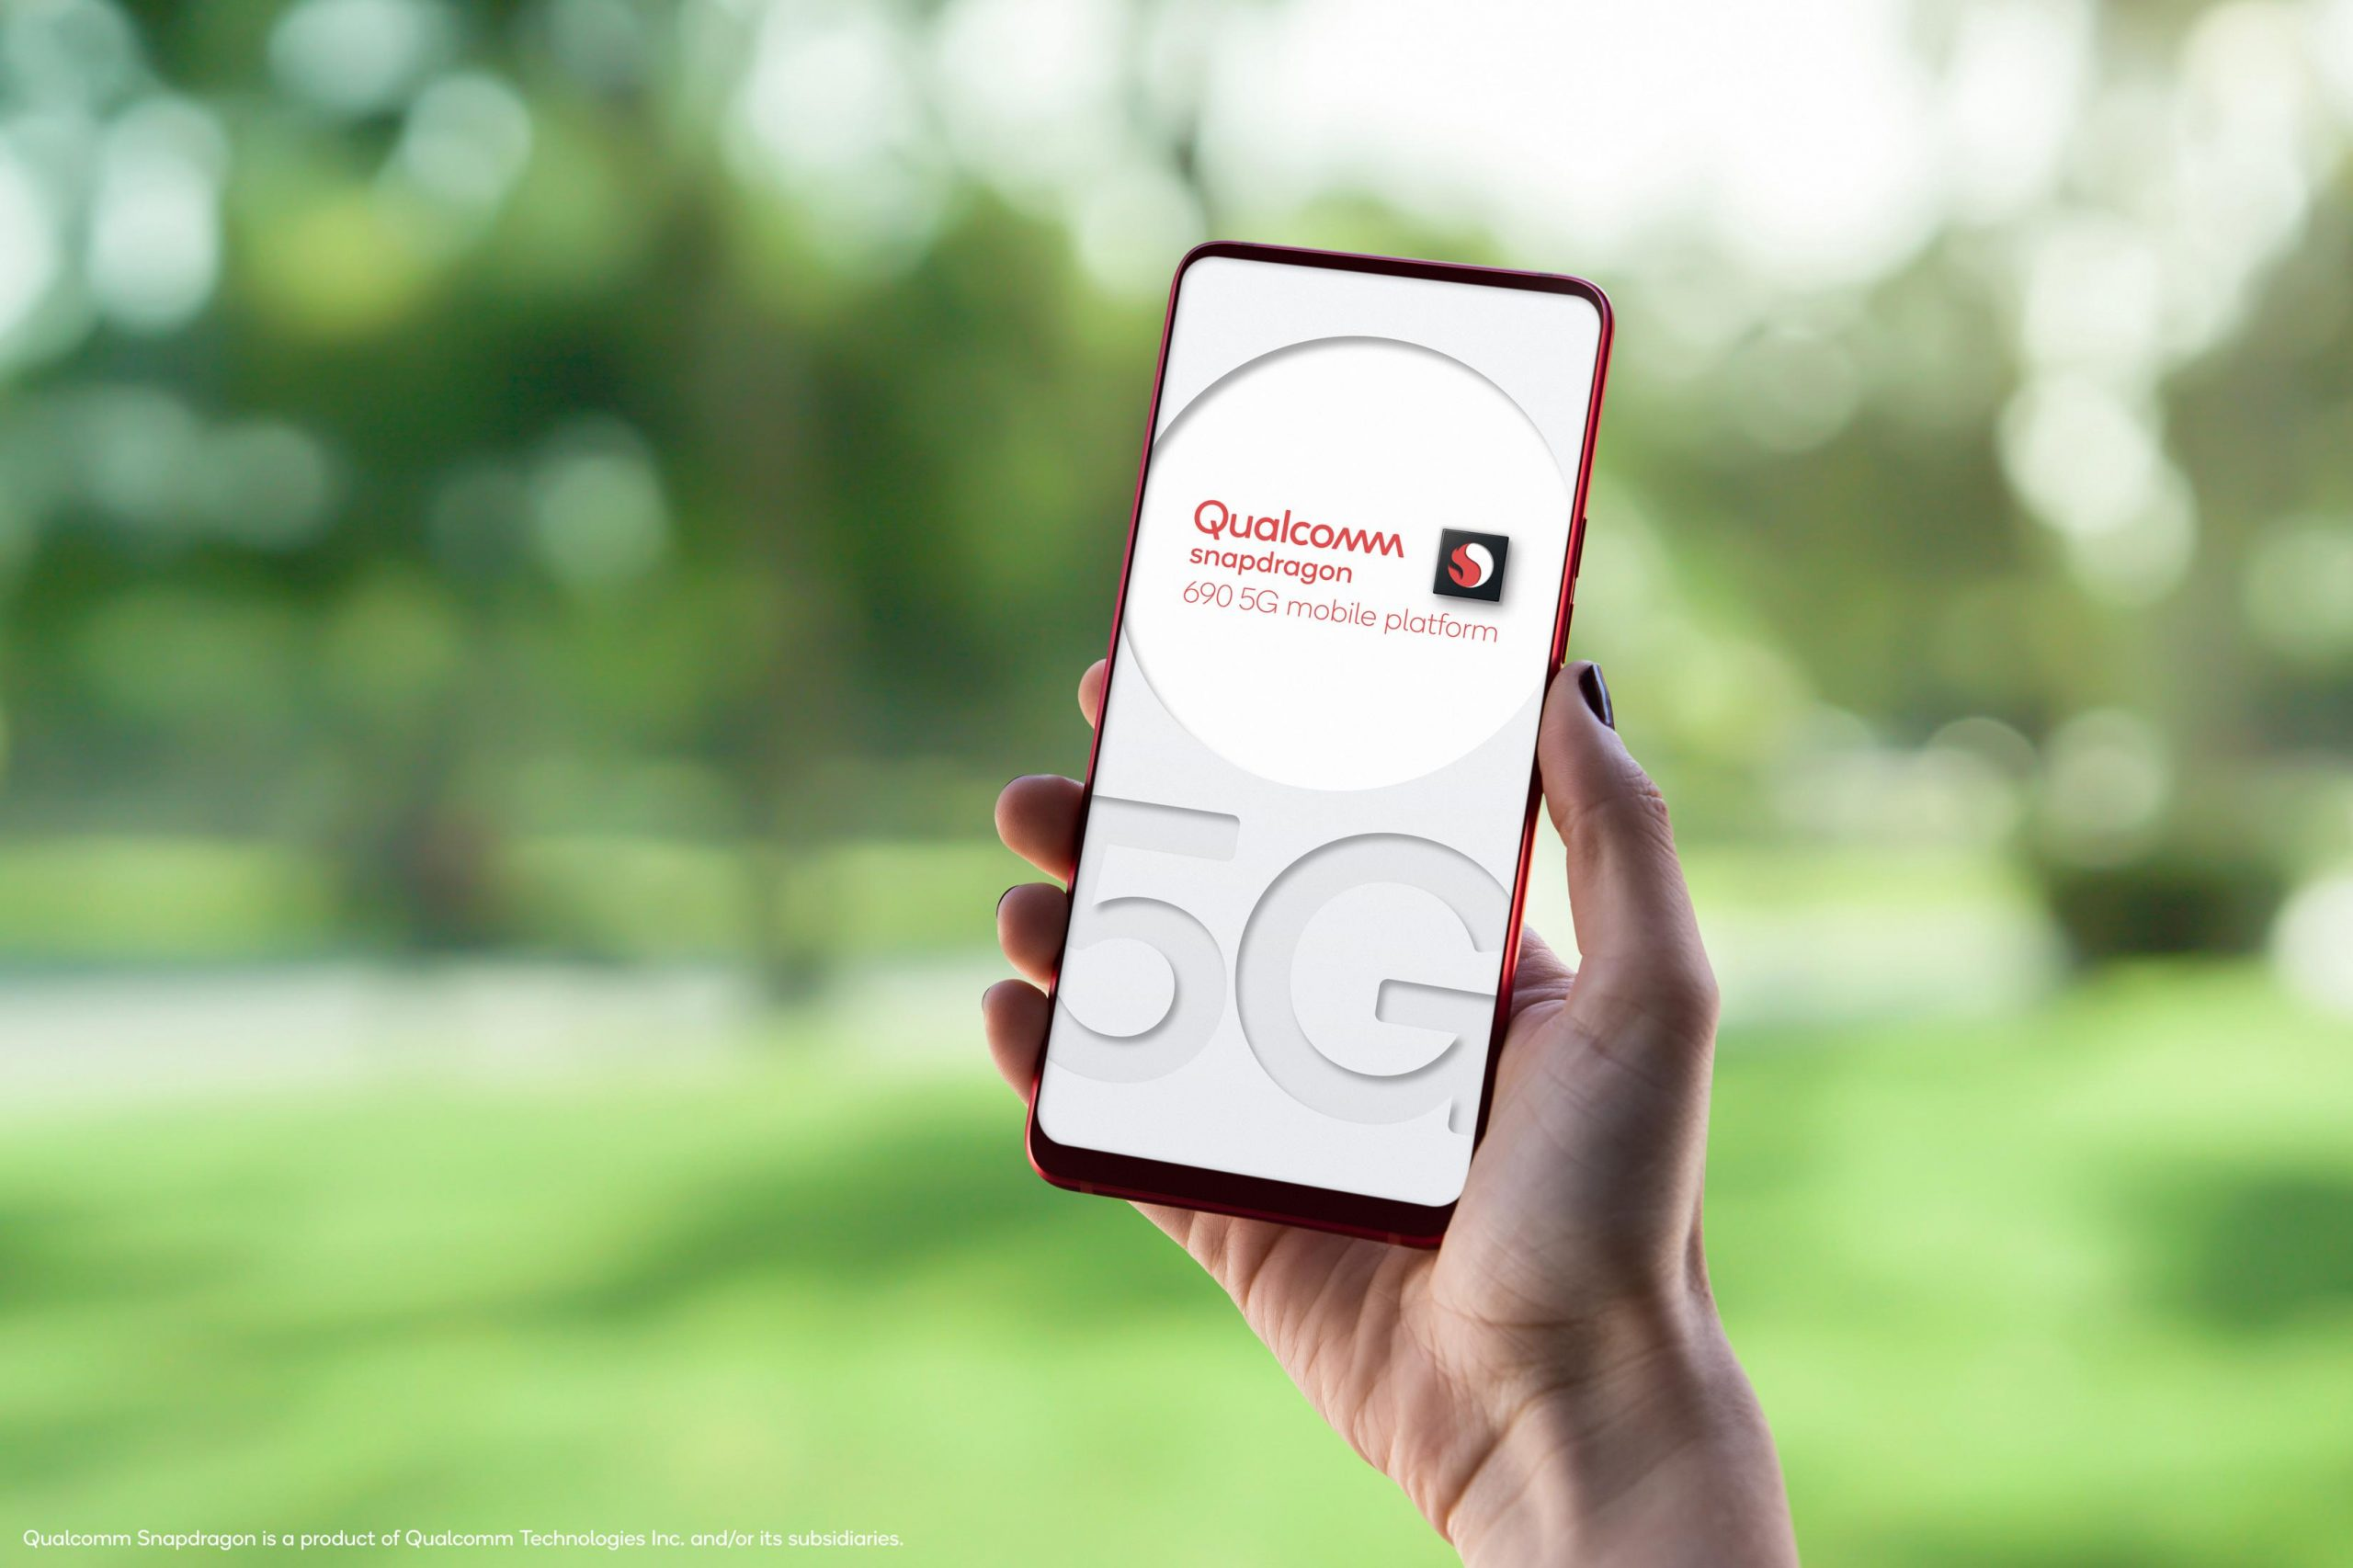 Qualcomm debuts Snapdragon 690 processor with 5G support